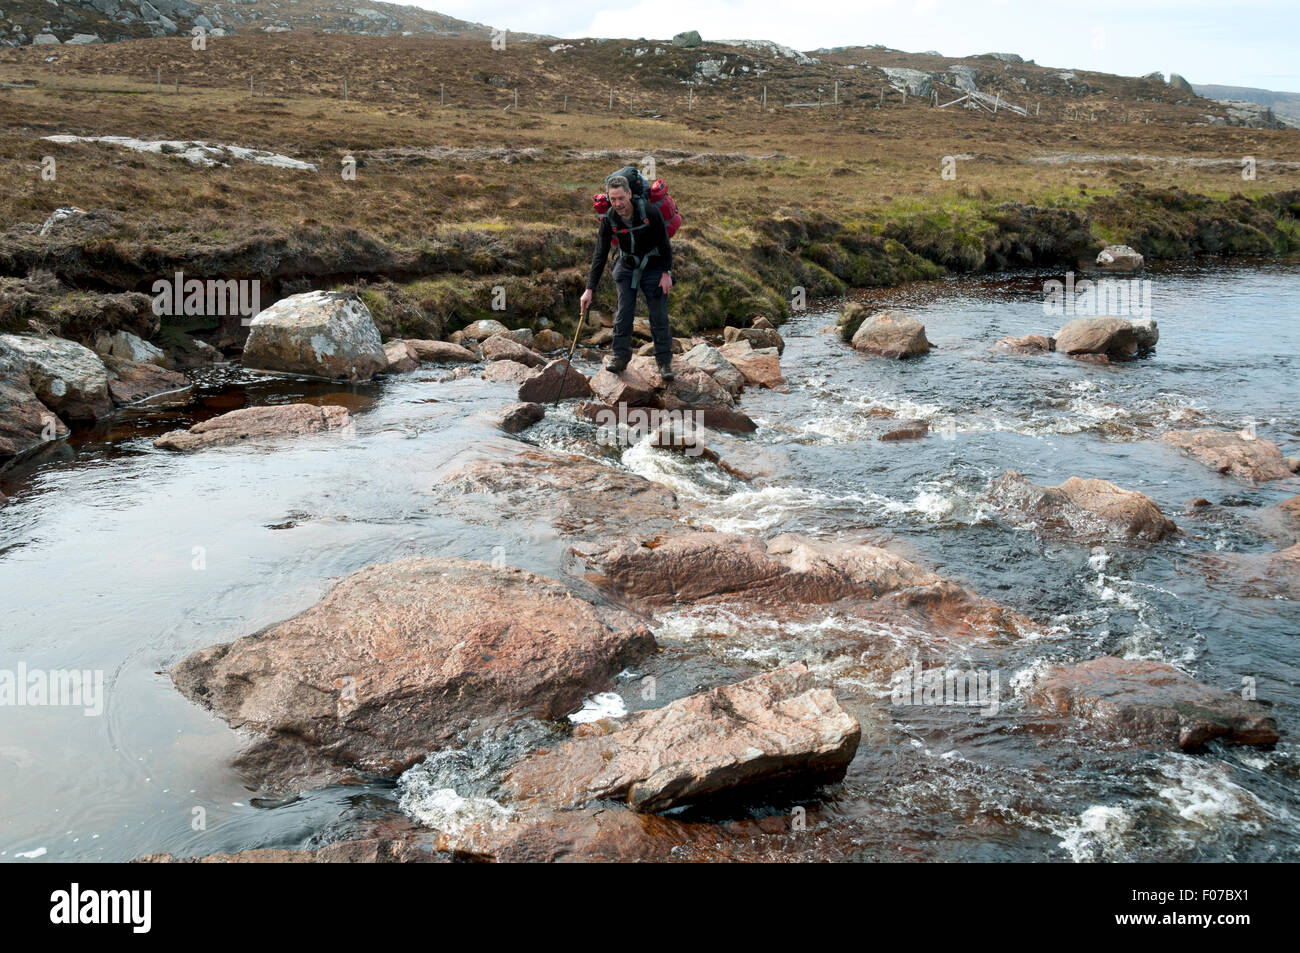 Walker crossing the Strath Cailleach river, near Sandwood Bay, Cape Wrath wilderness, Sutherland, Scotland, UK - Stock Image